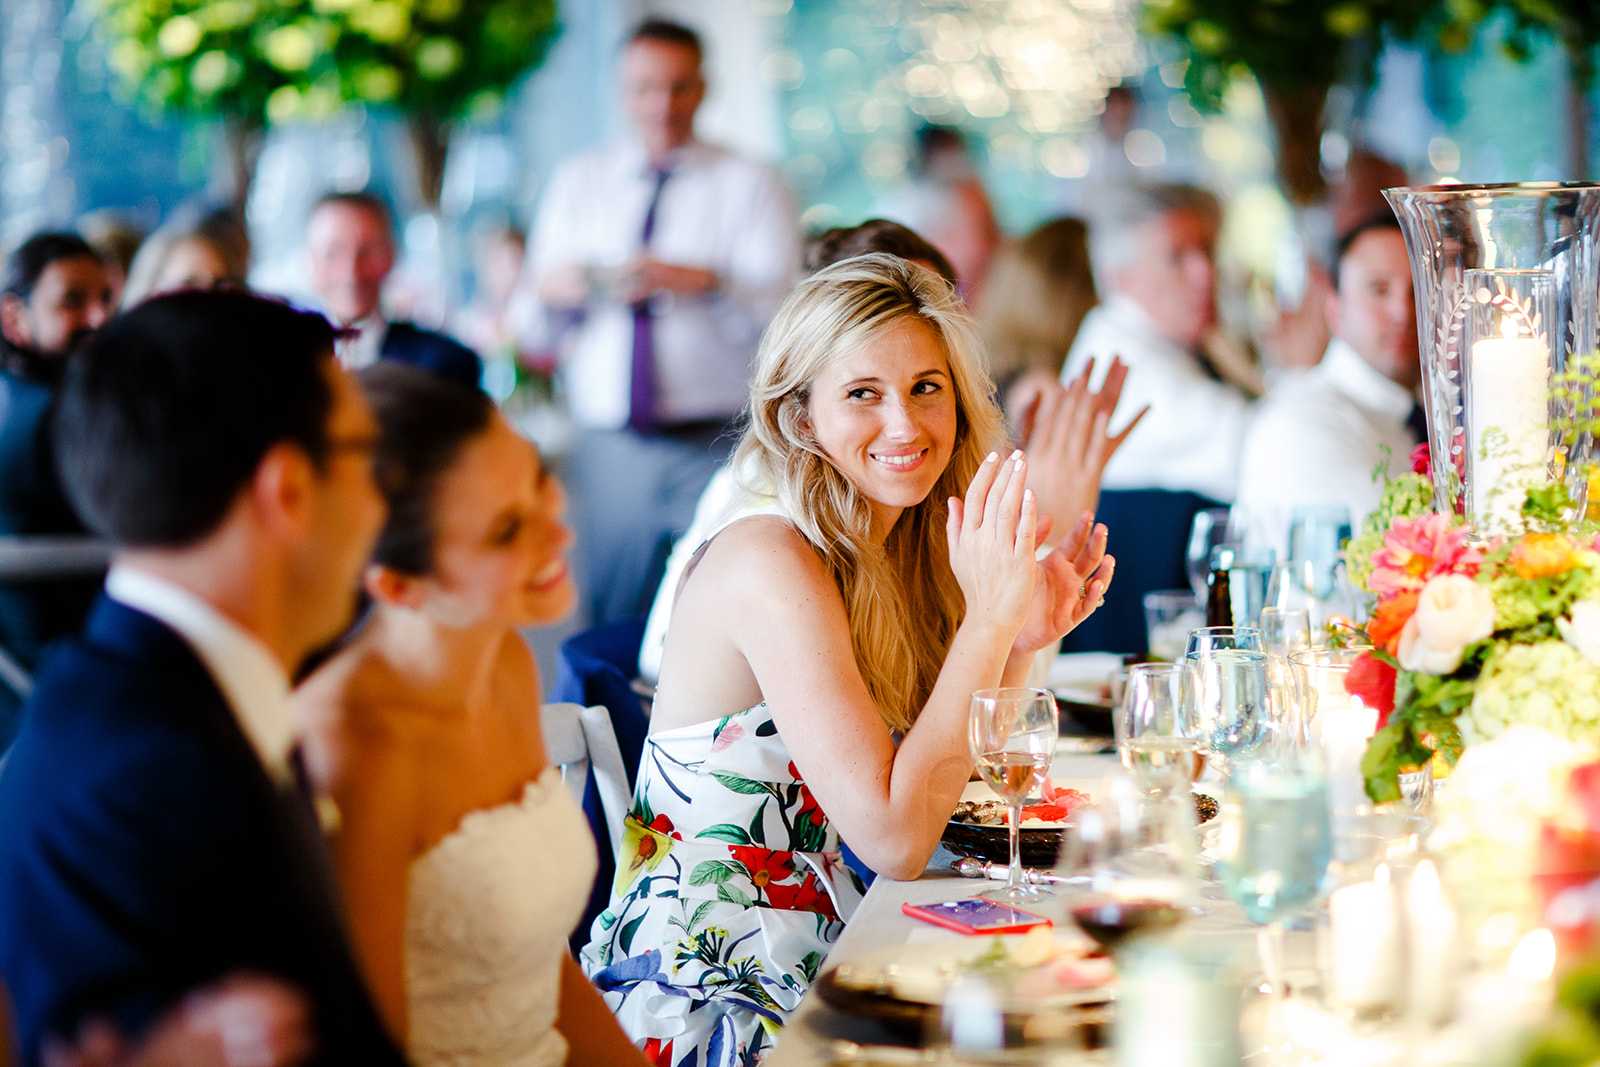 The couple's family were all very close and it was so evident both while being present with them on the wedding day and also in the wedding photos. We love this shot of the bride's sister at dinner during their dad's toast.